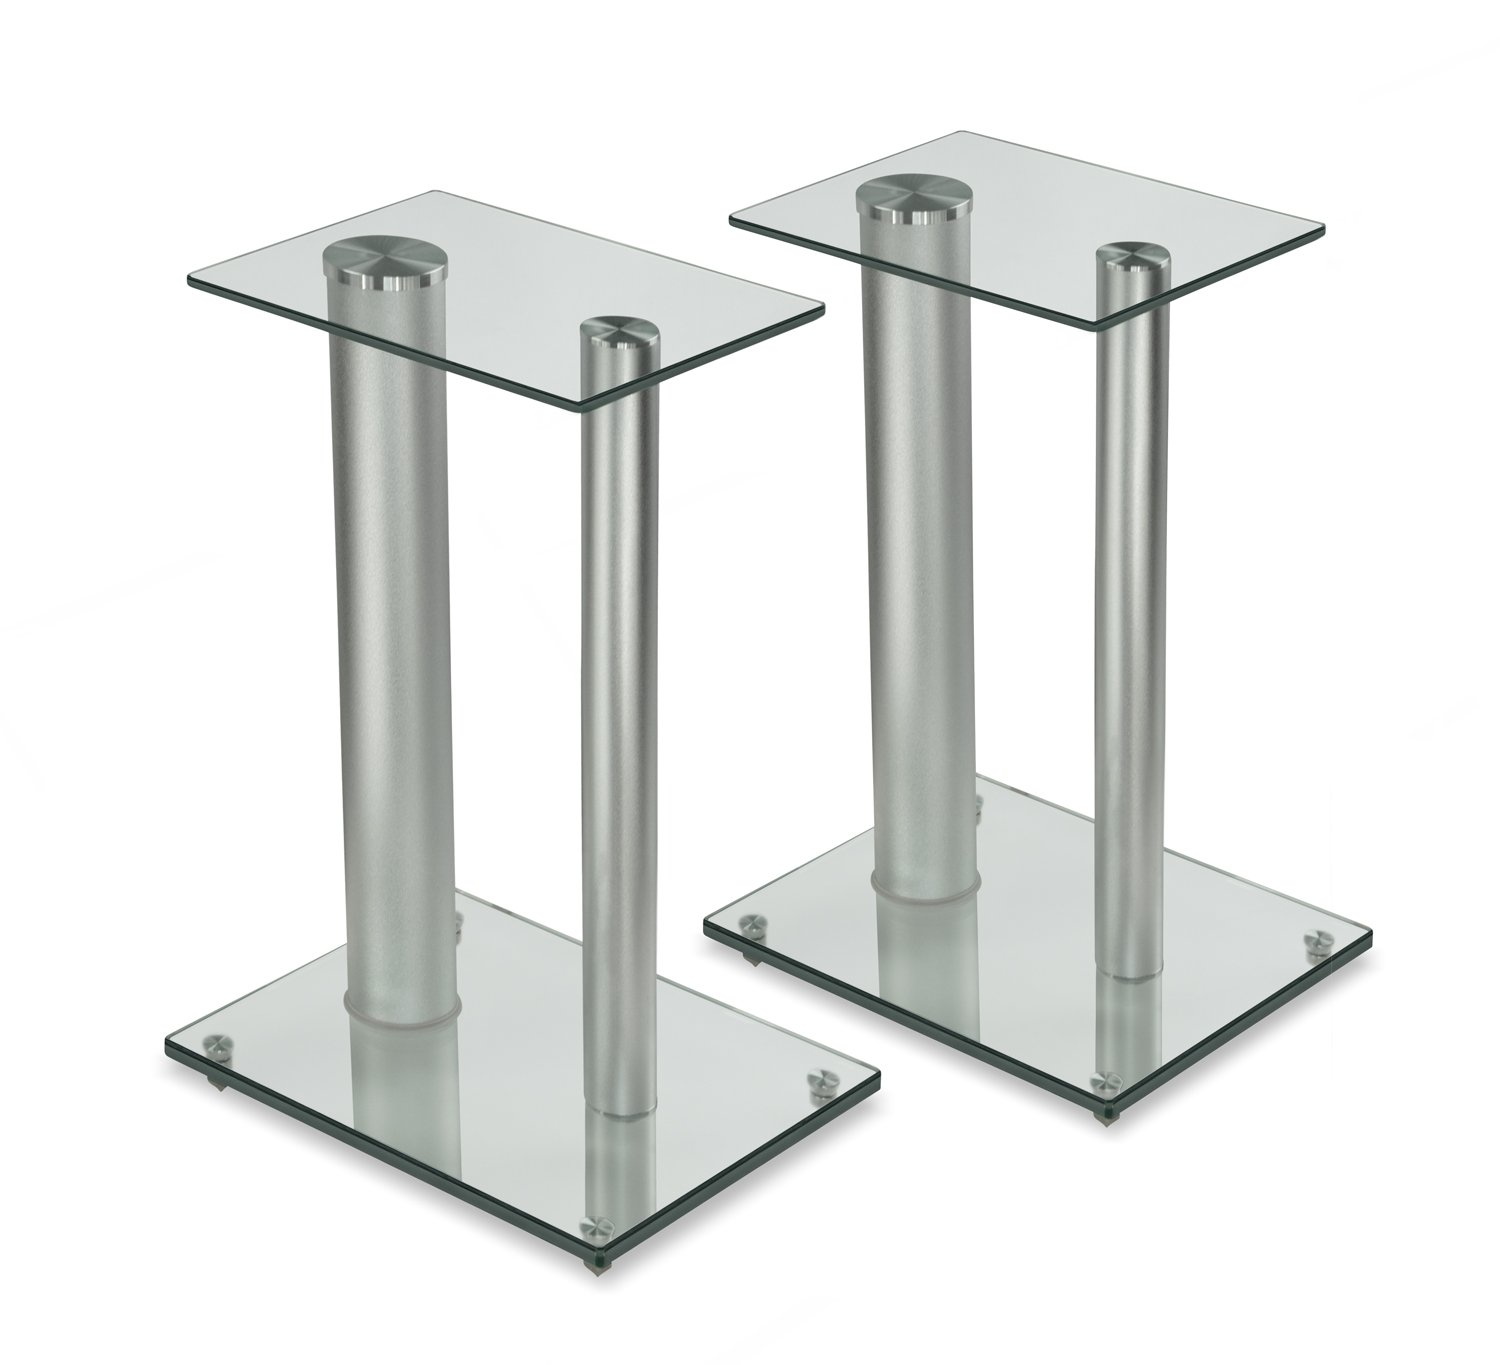 Mount-It! Speaker Floor Stands for Surround Sound Home Theaters, 18 Inch High, 22 Lbs Capacity, Tempered Glass and Aluminum, Clear and Silver, One Pair by Mount-It!